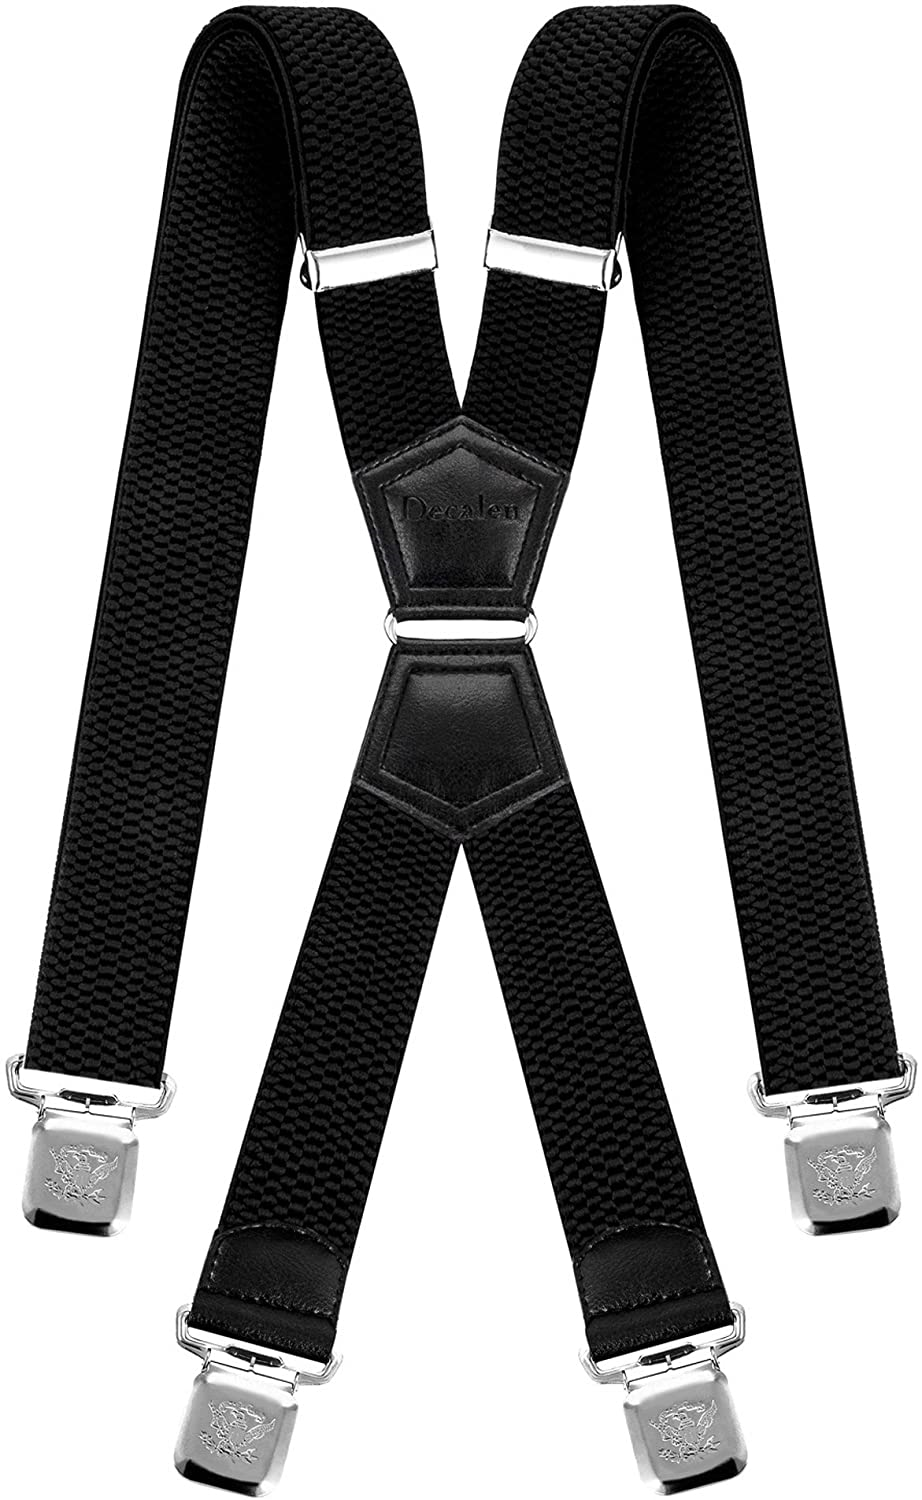 Decalen Mens Braces X Style Very Strong Clips Adjustable One Size Fits All Heavy